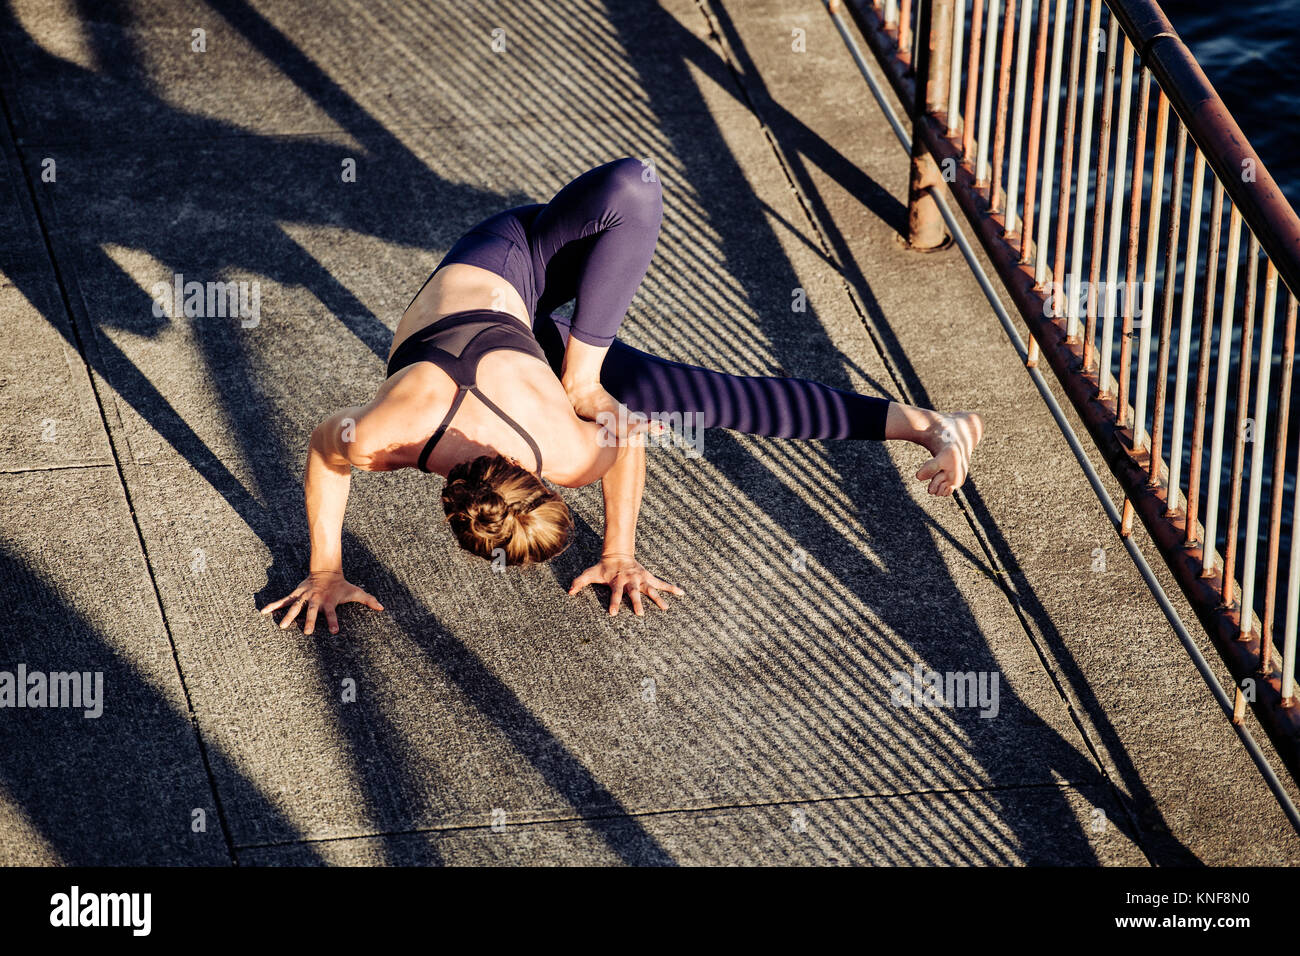 Young woman outdoors, in urban setting, in yoga position, elevated view - Stock Image